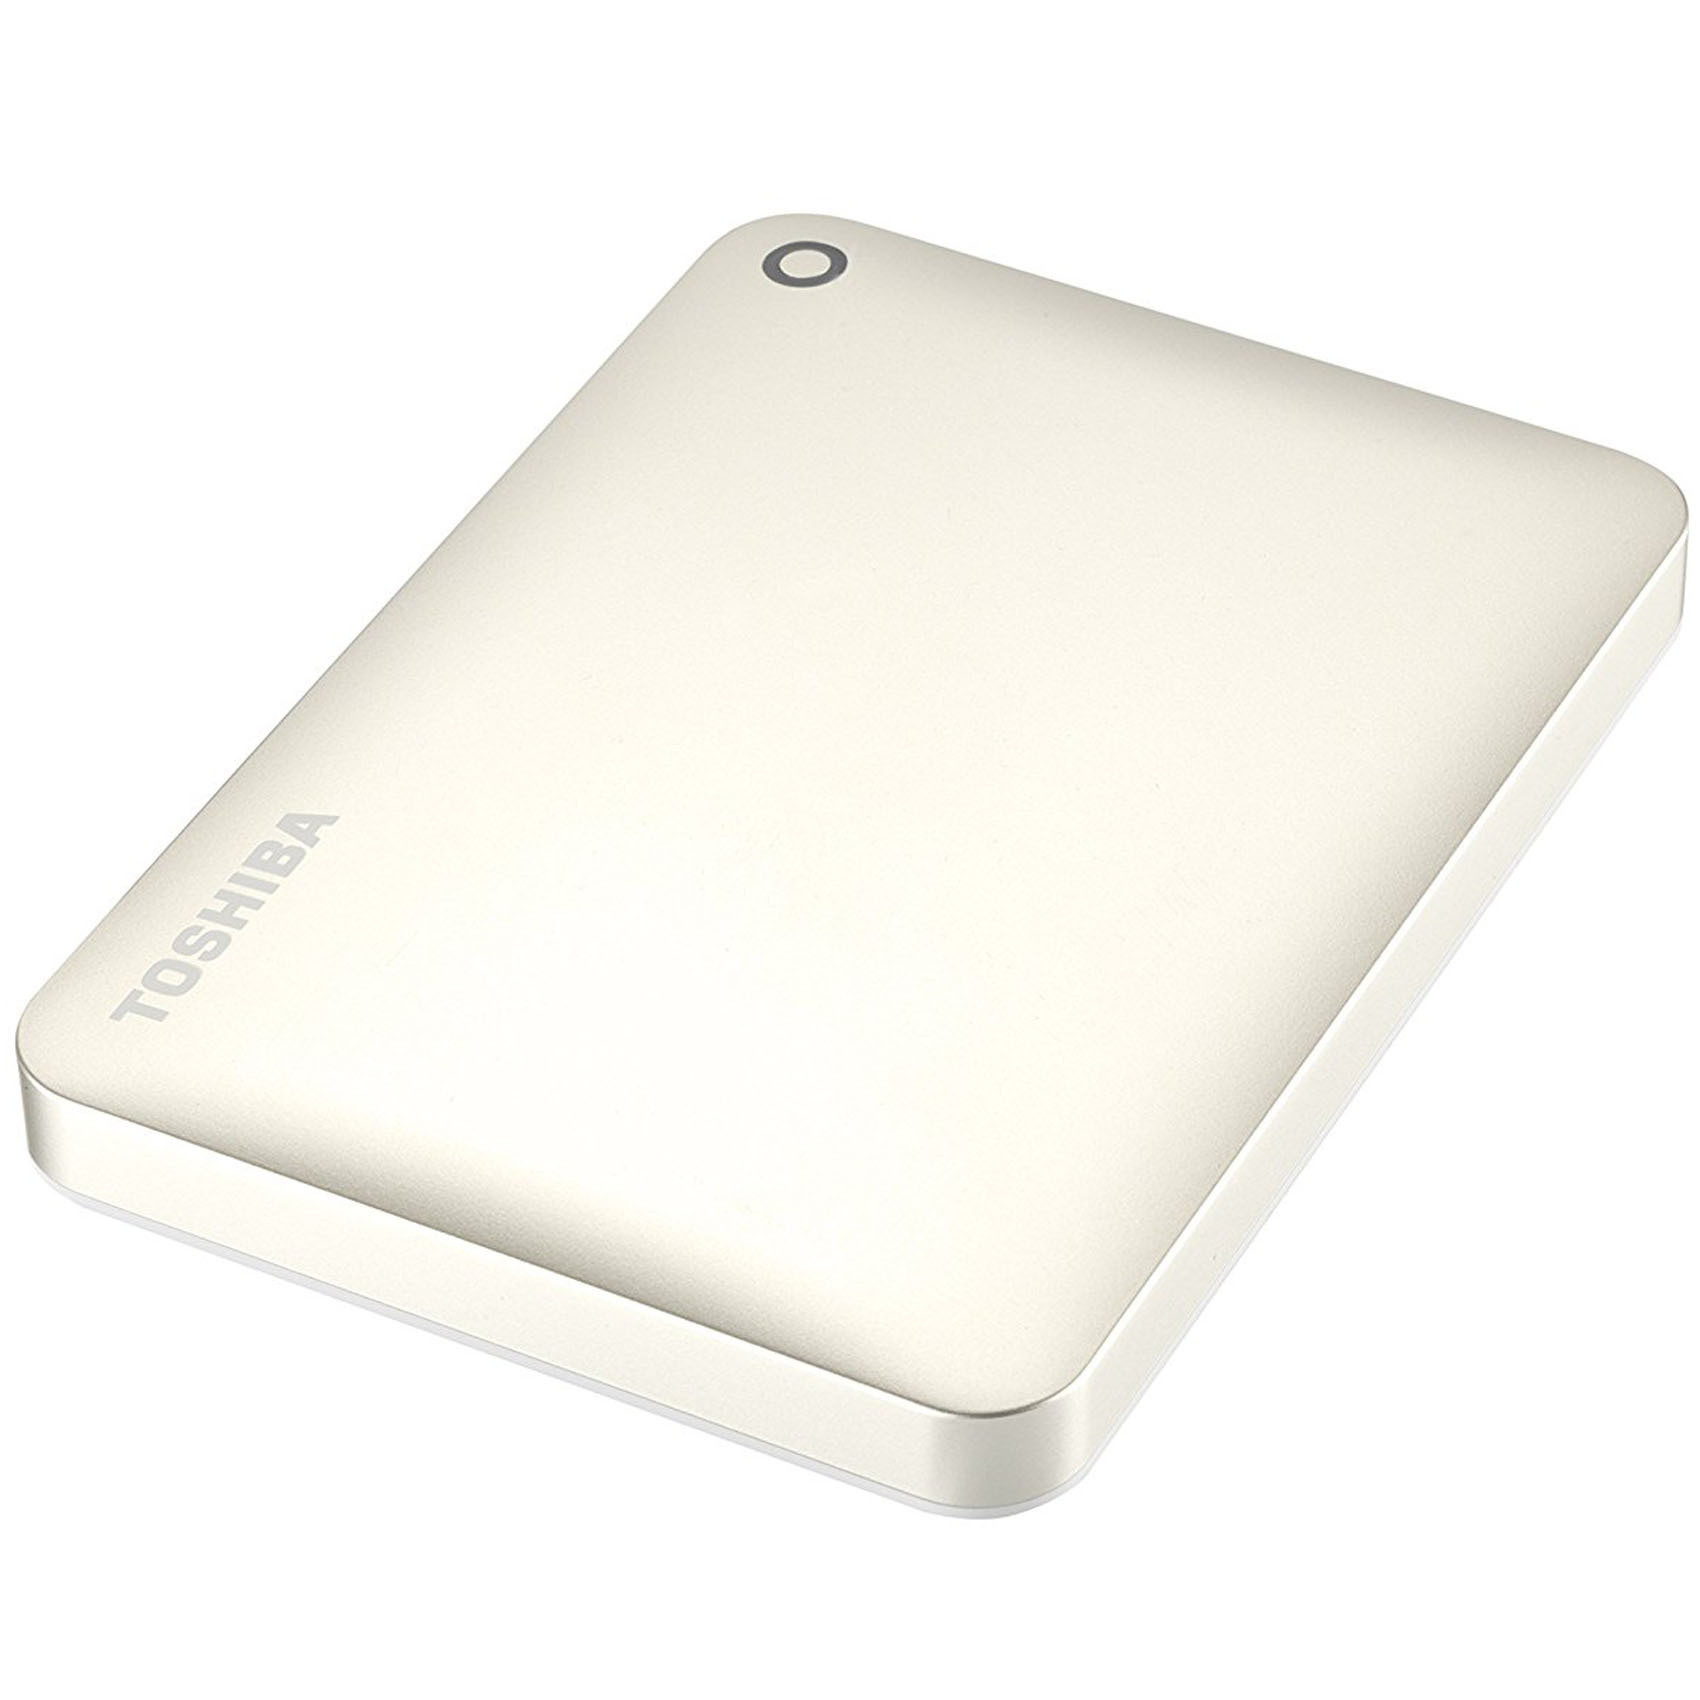 Buy Toshiba Hard Disk 2tb Canvio Ii 25 Satin Gold Online In Uae Hardisk External Basic 2 Tb Hdd Can Connect